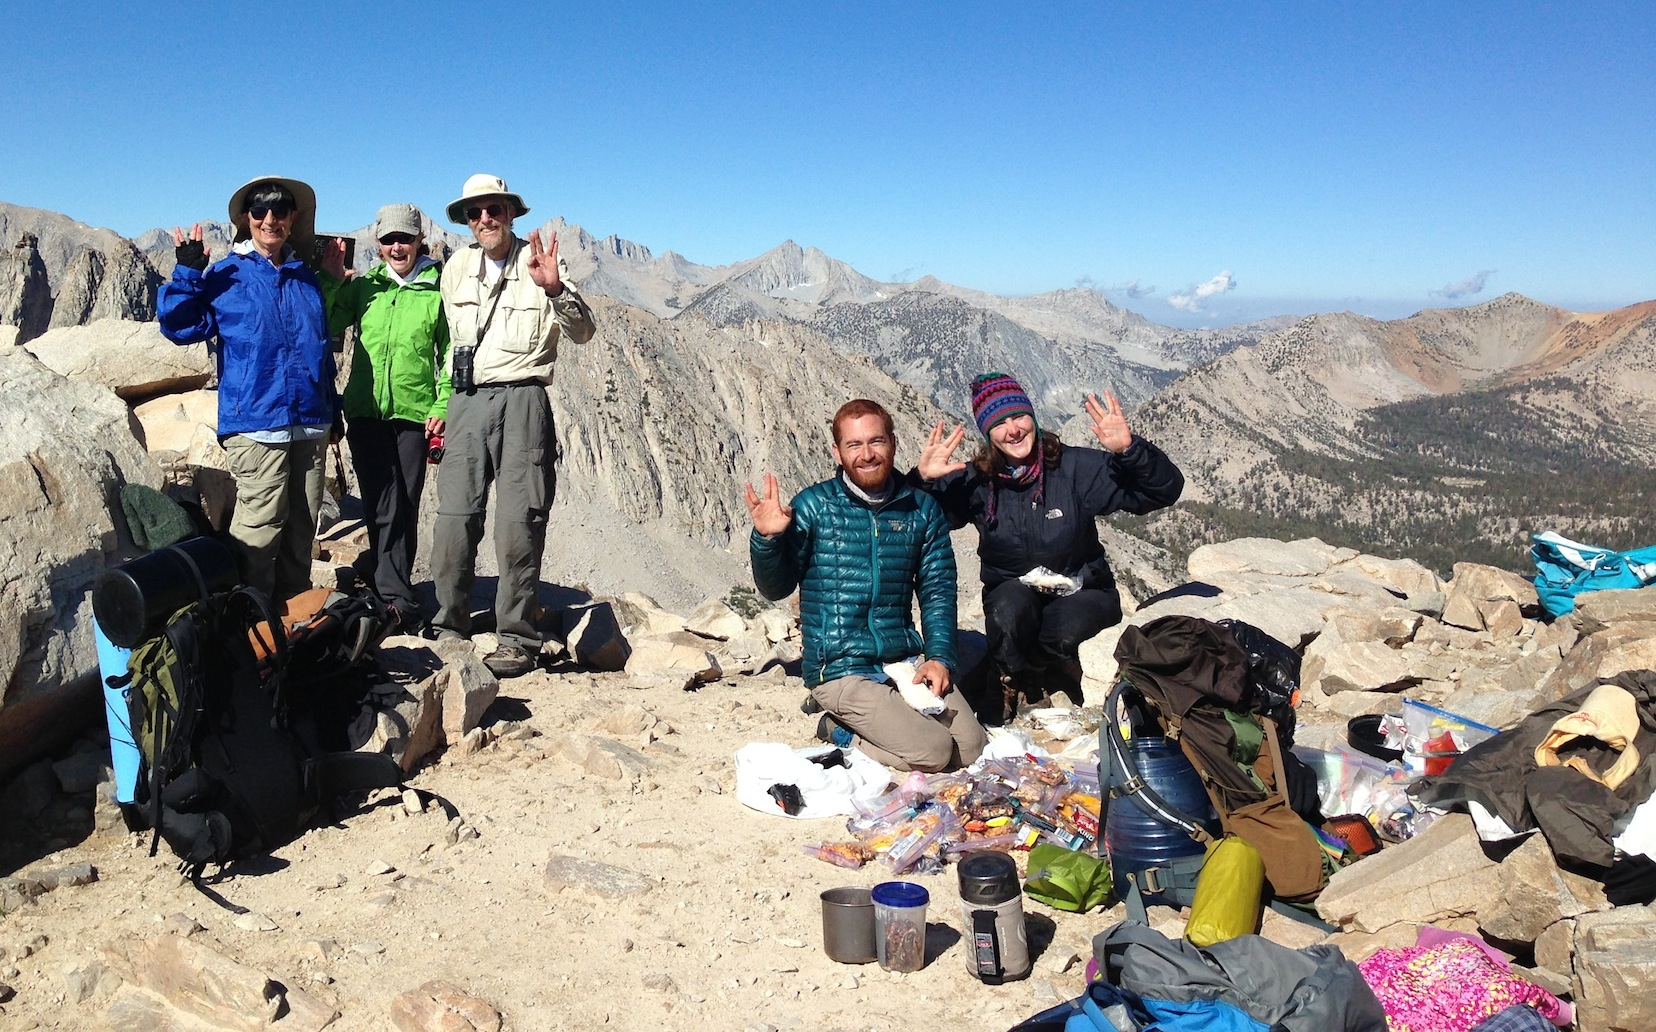 Sierra Nevada Bighorn Sheep Foundation board members Ginnie, Julie and John at Kearsarge Pass with happy JMT hikers Adam and friend on July 21.